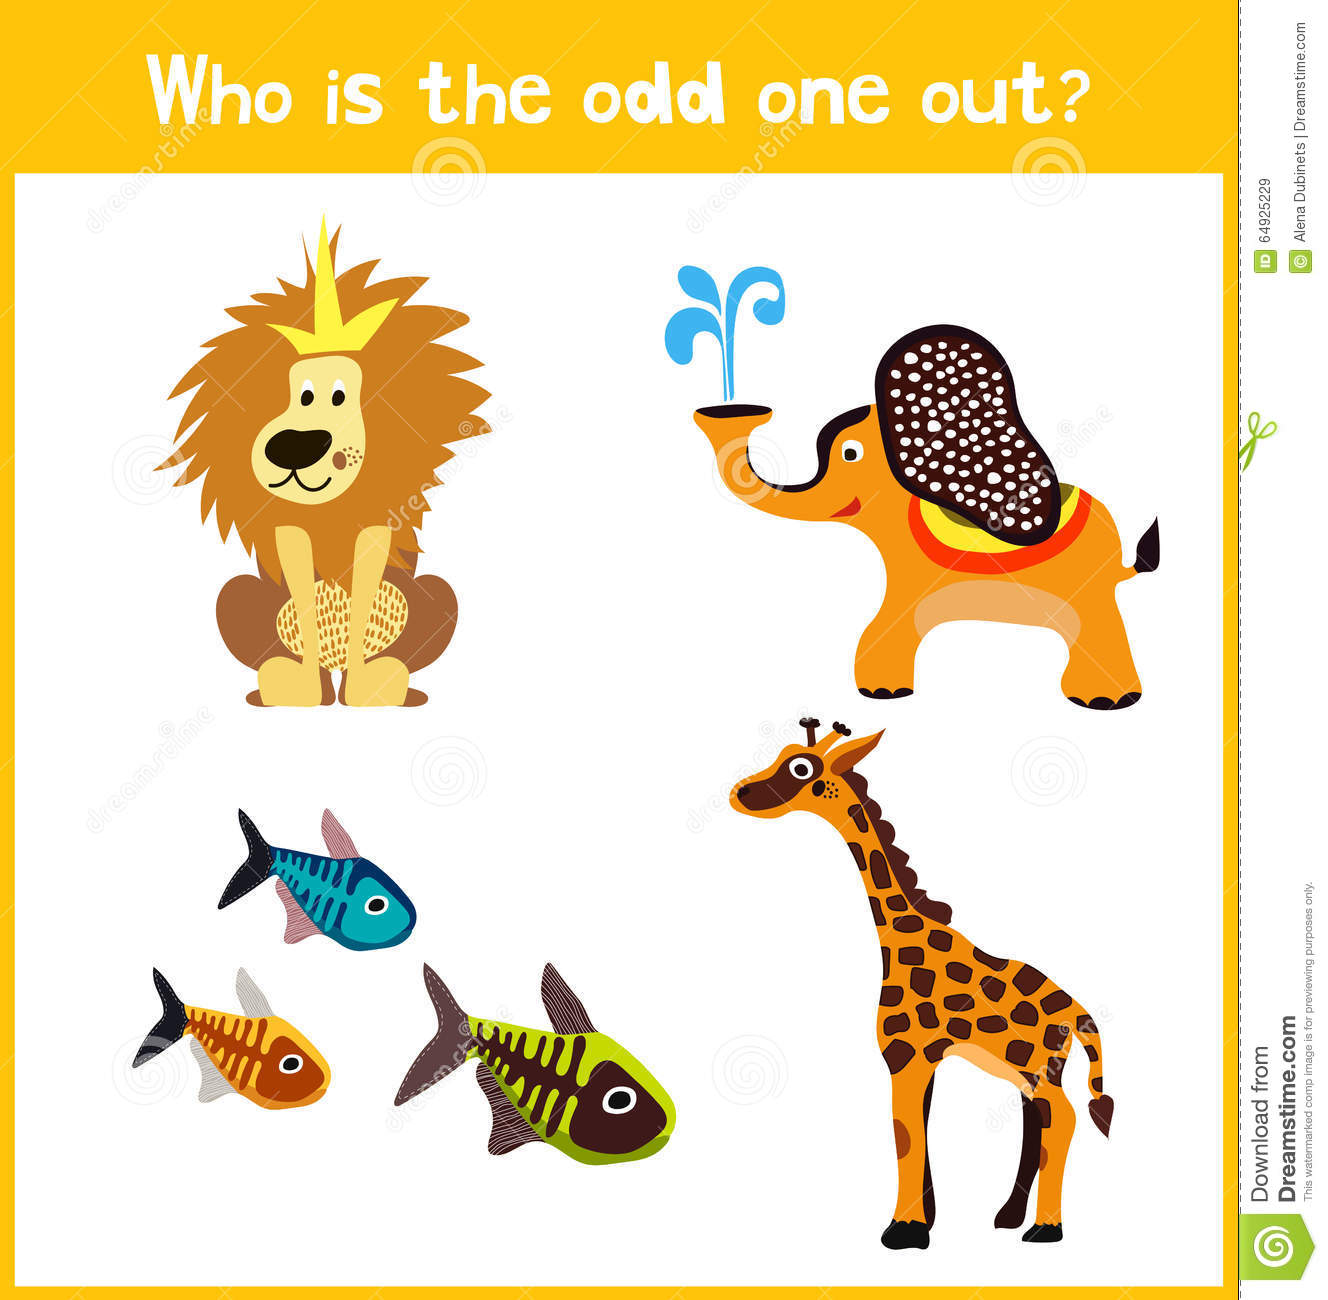 children colorful educational cartoon game puzzle page for